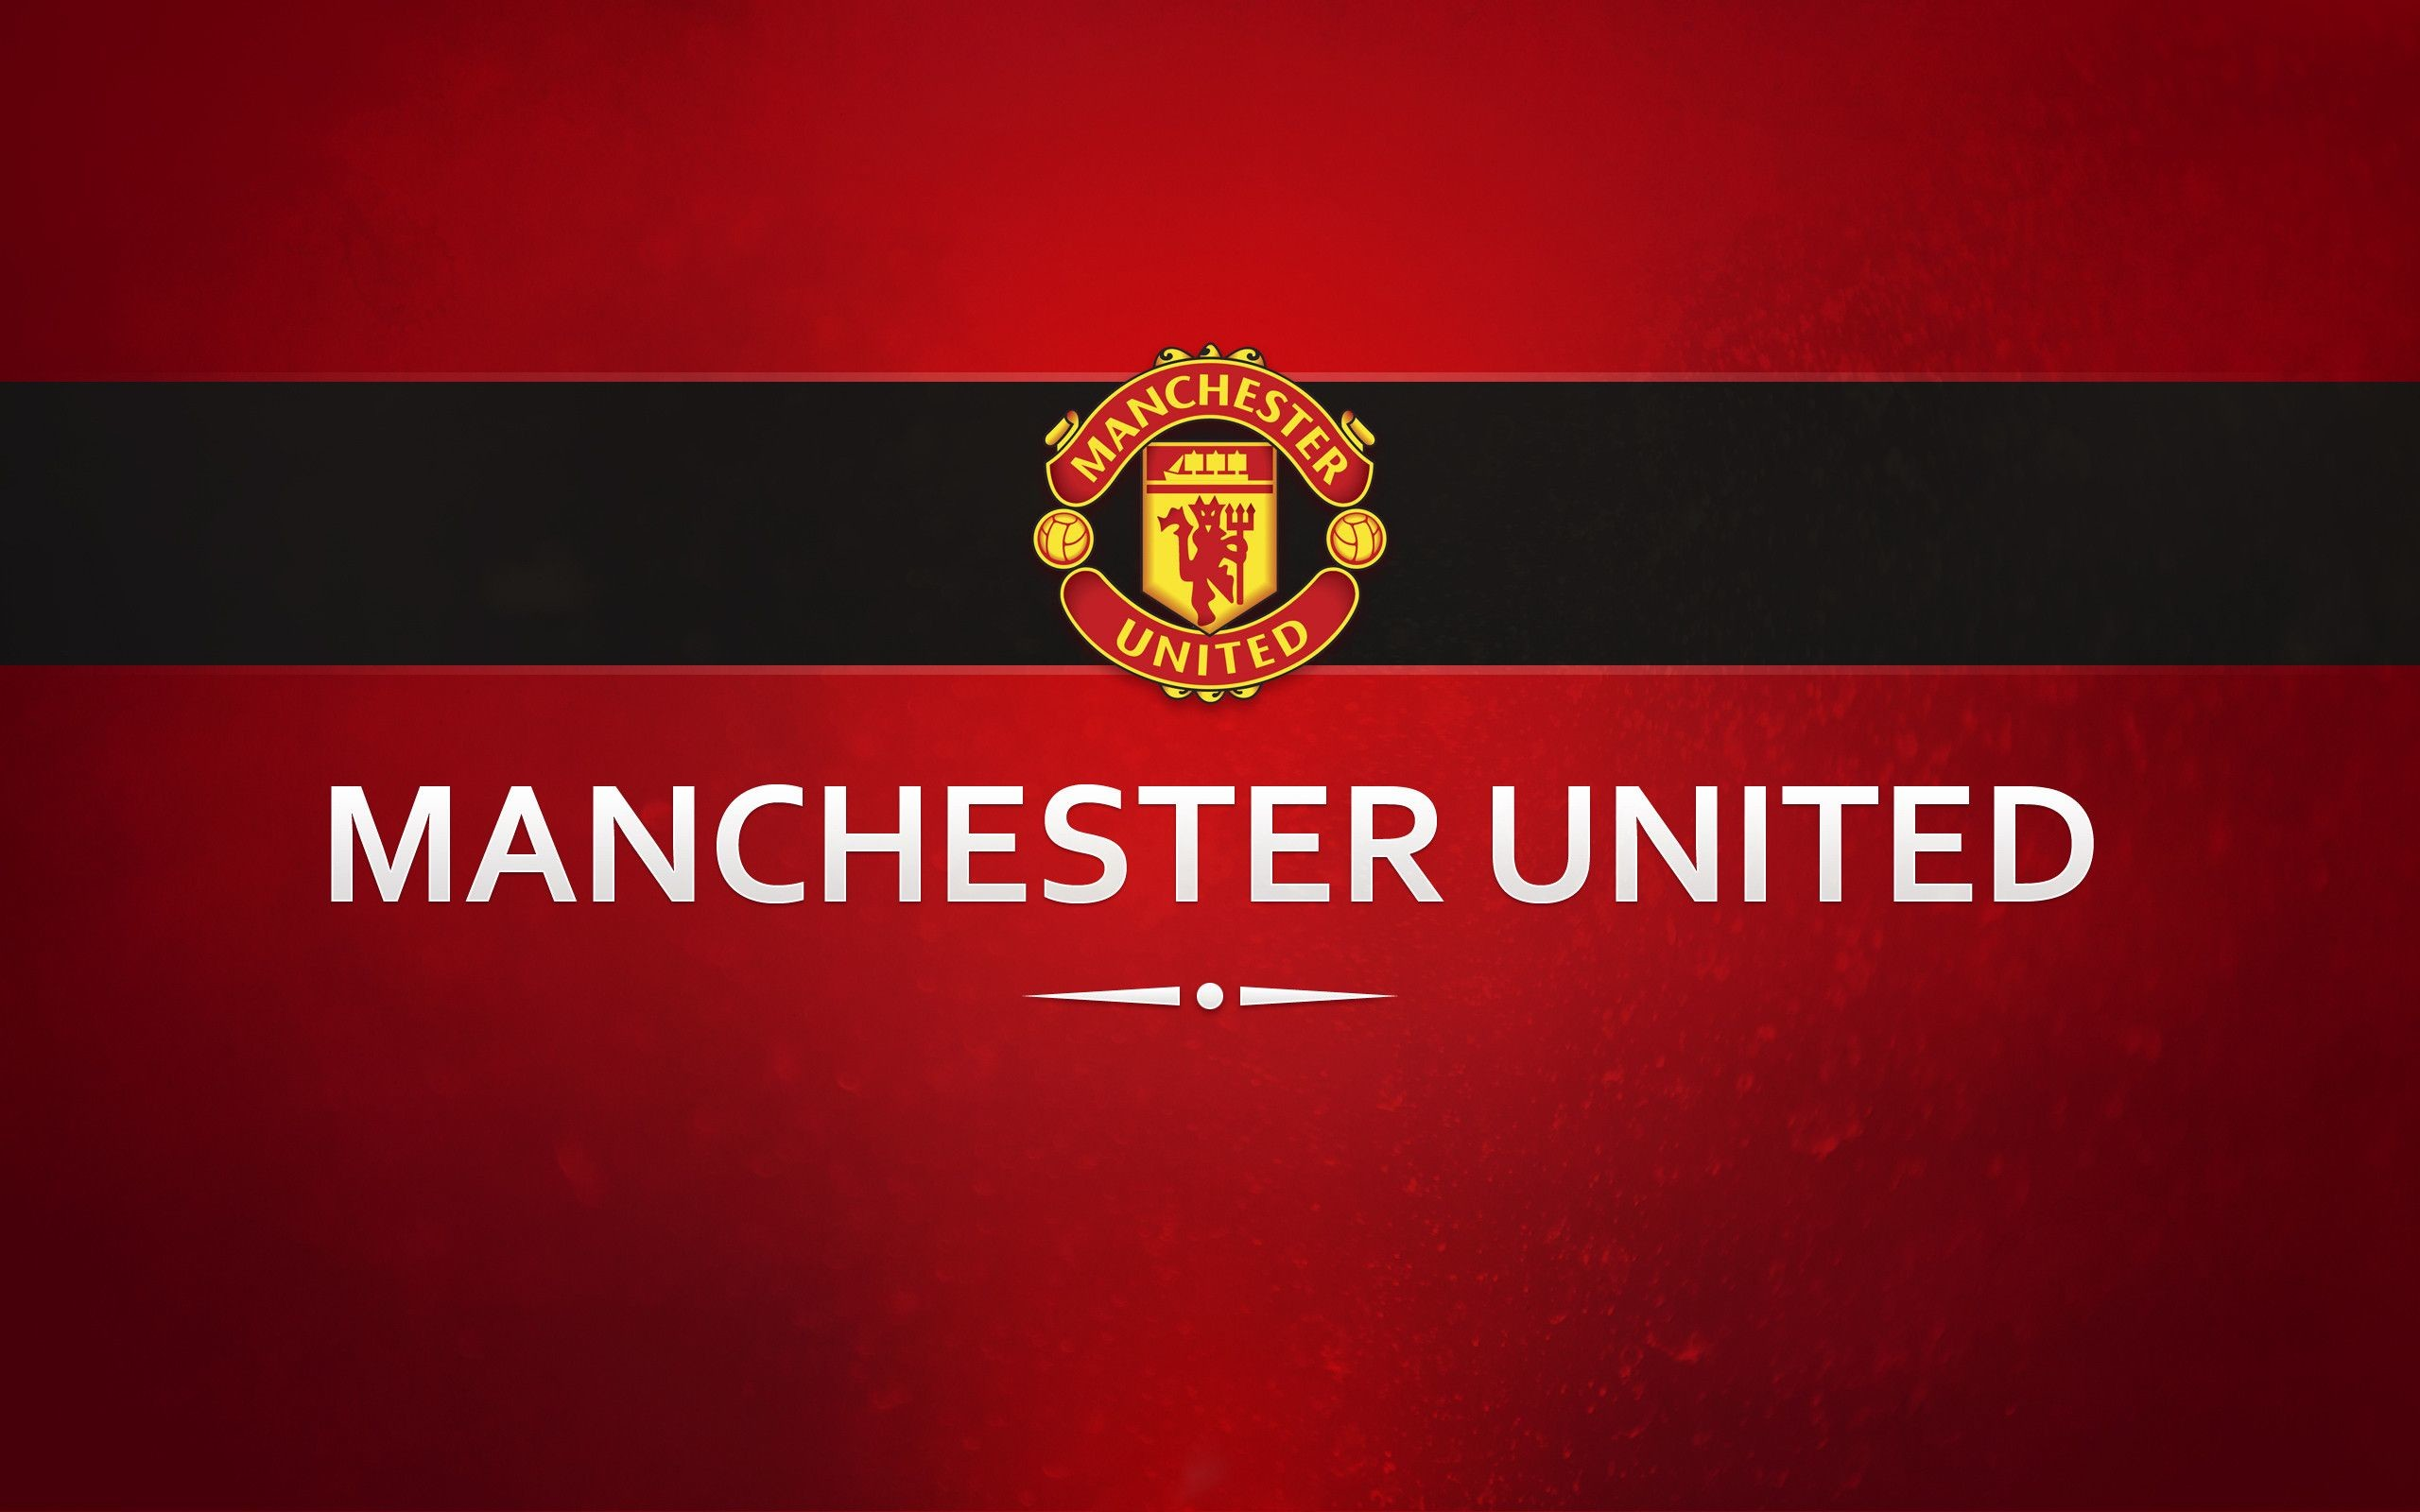 2560x1600 Manchester United Logo Wallpapers HD 2015 - Wallpaper Cave